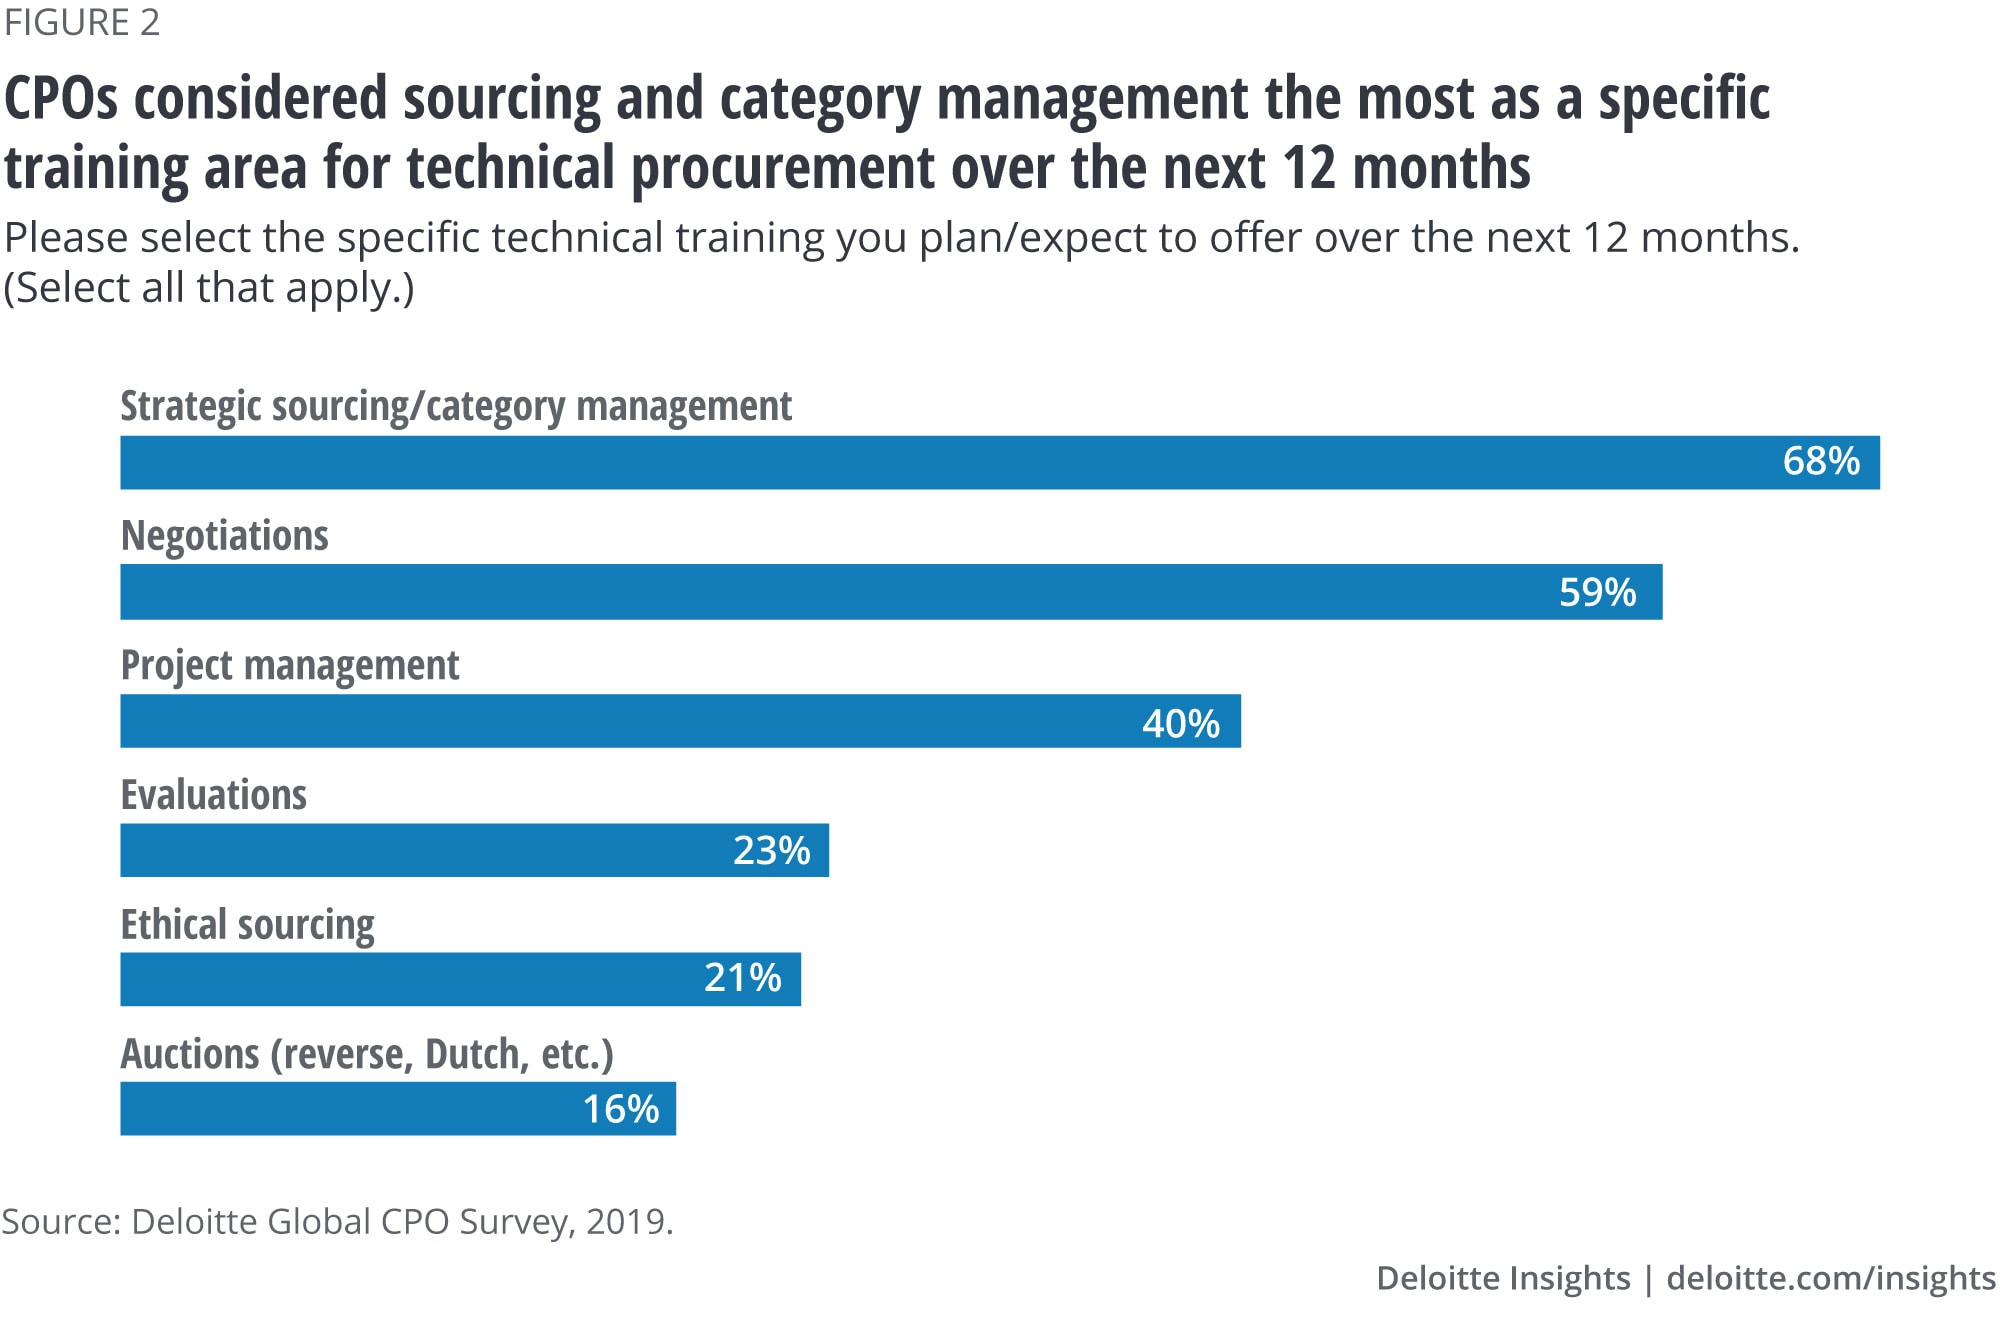 CPOs considered sourcing and category management the most as a specific training area for technical procurement over the next 12 months